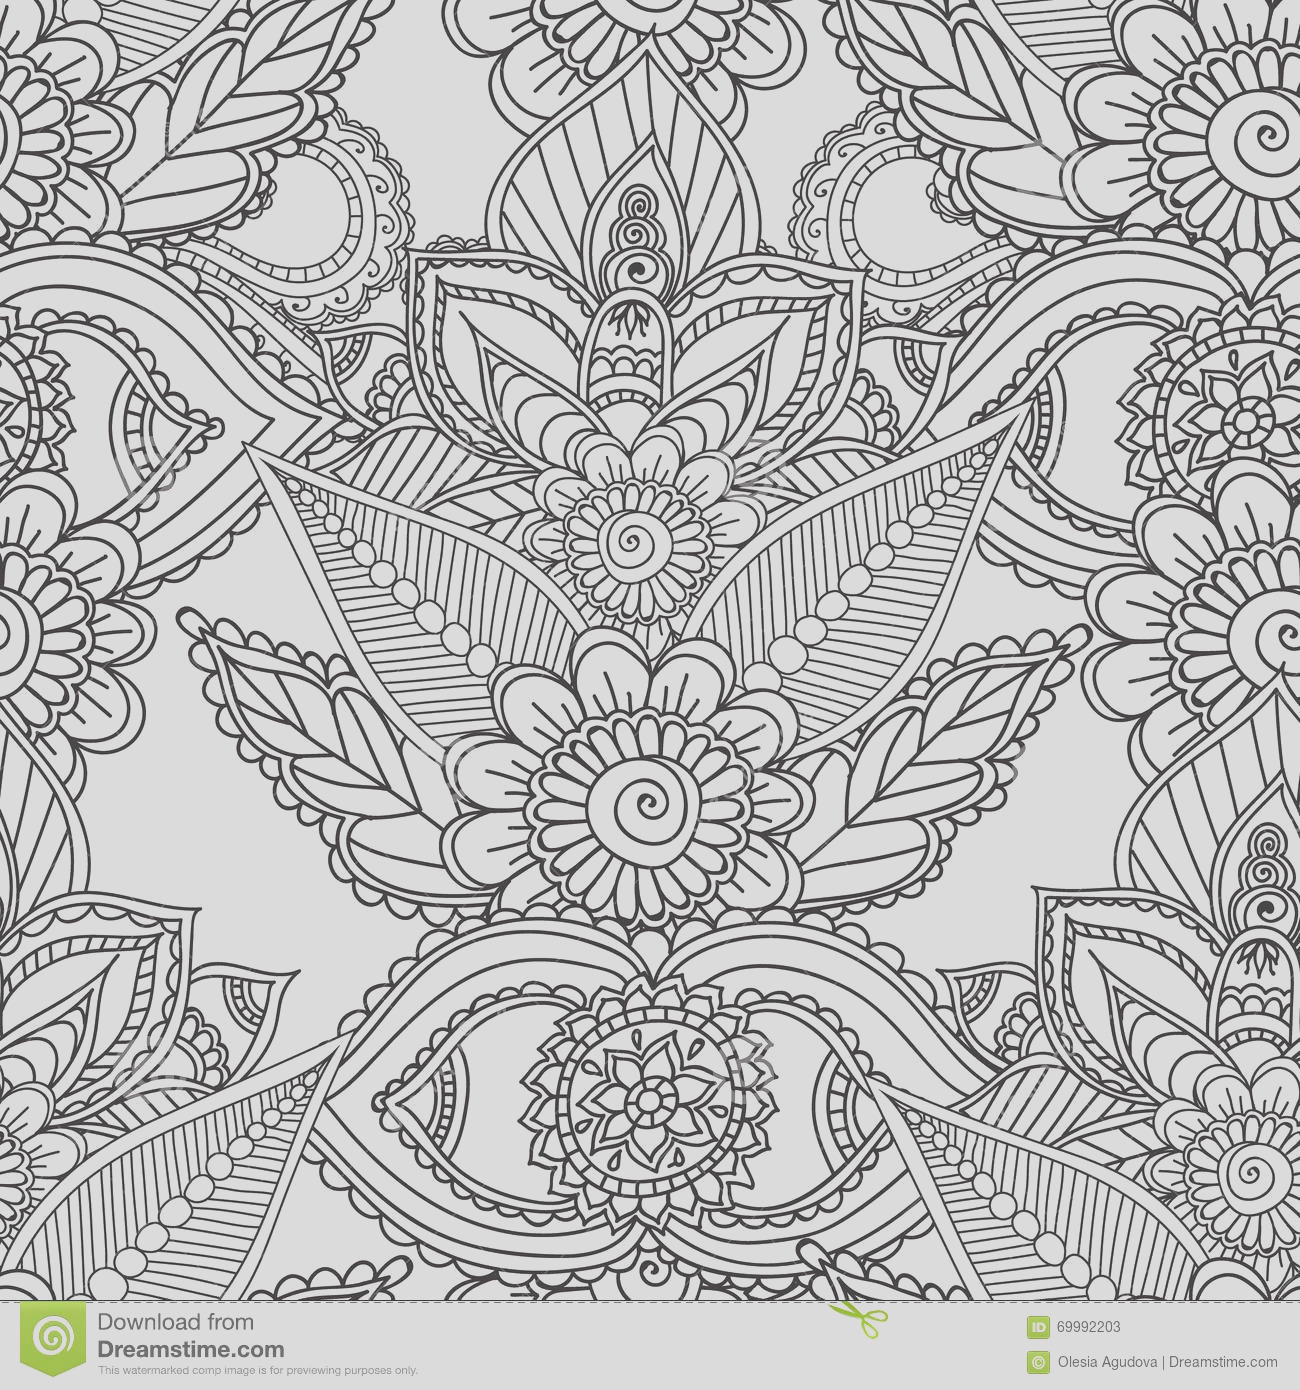 stock illustration coloring pages adults seamles henna mehndi doodles abstract floral elements seamless pattern paisley design mandala vector image